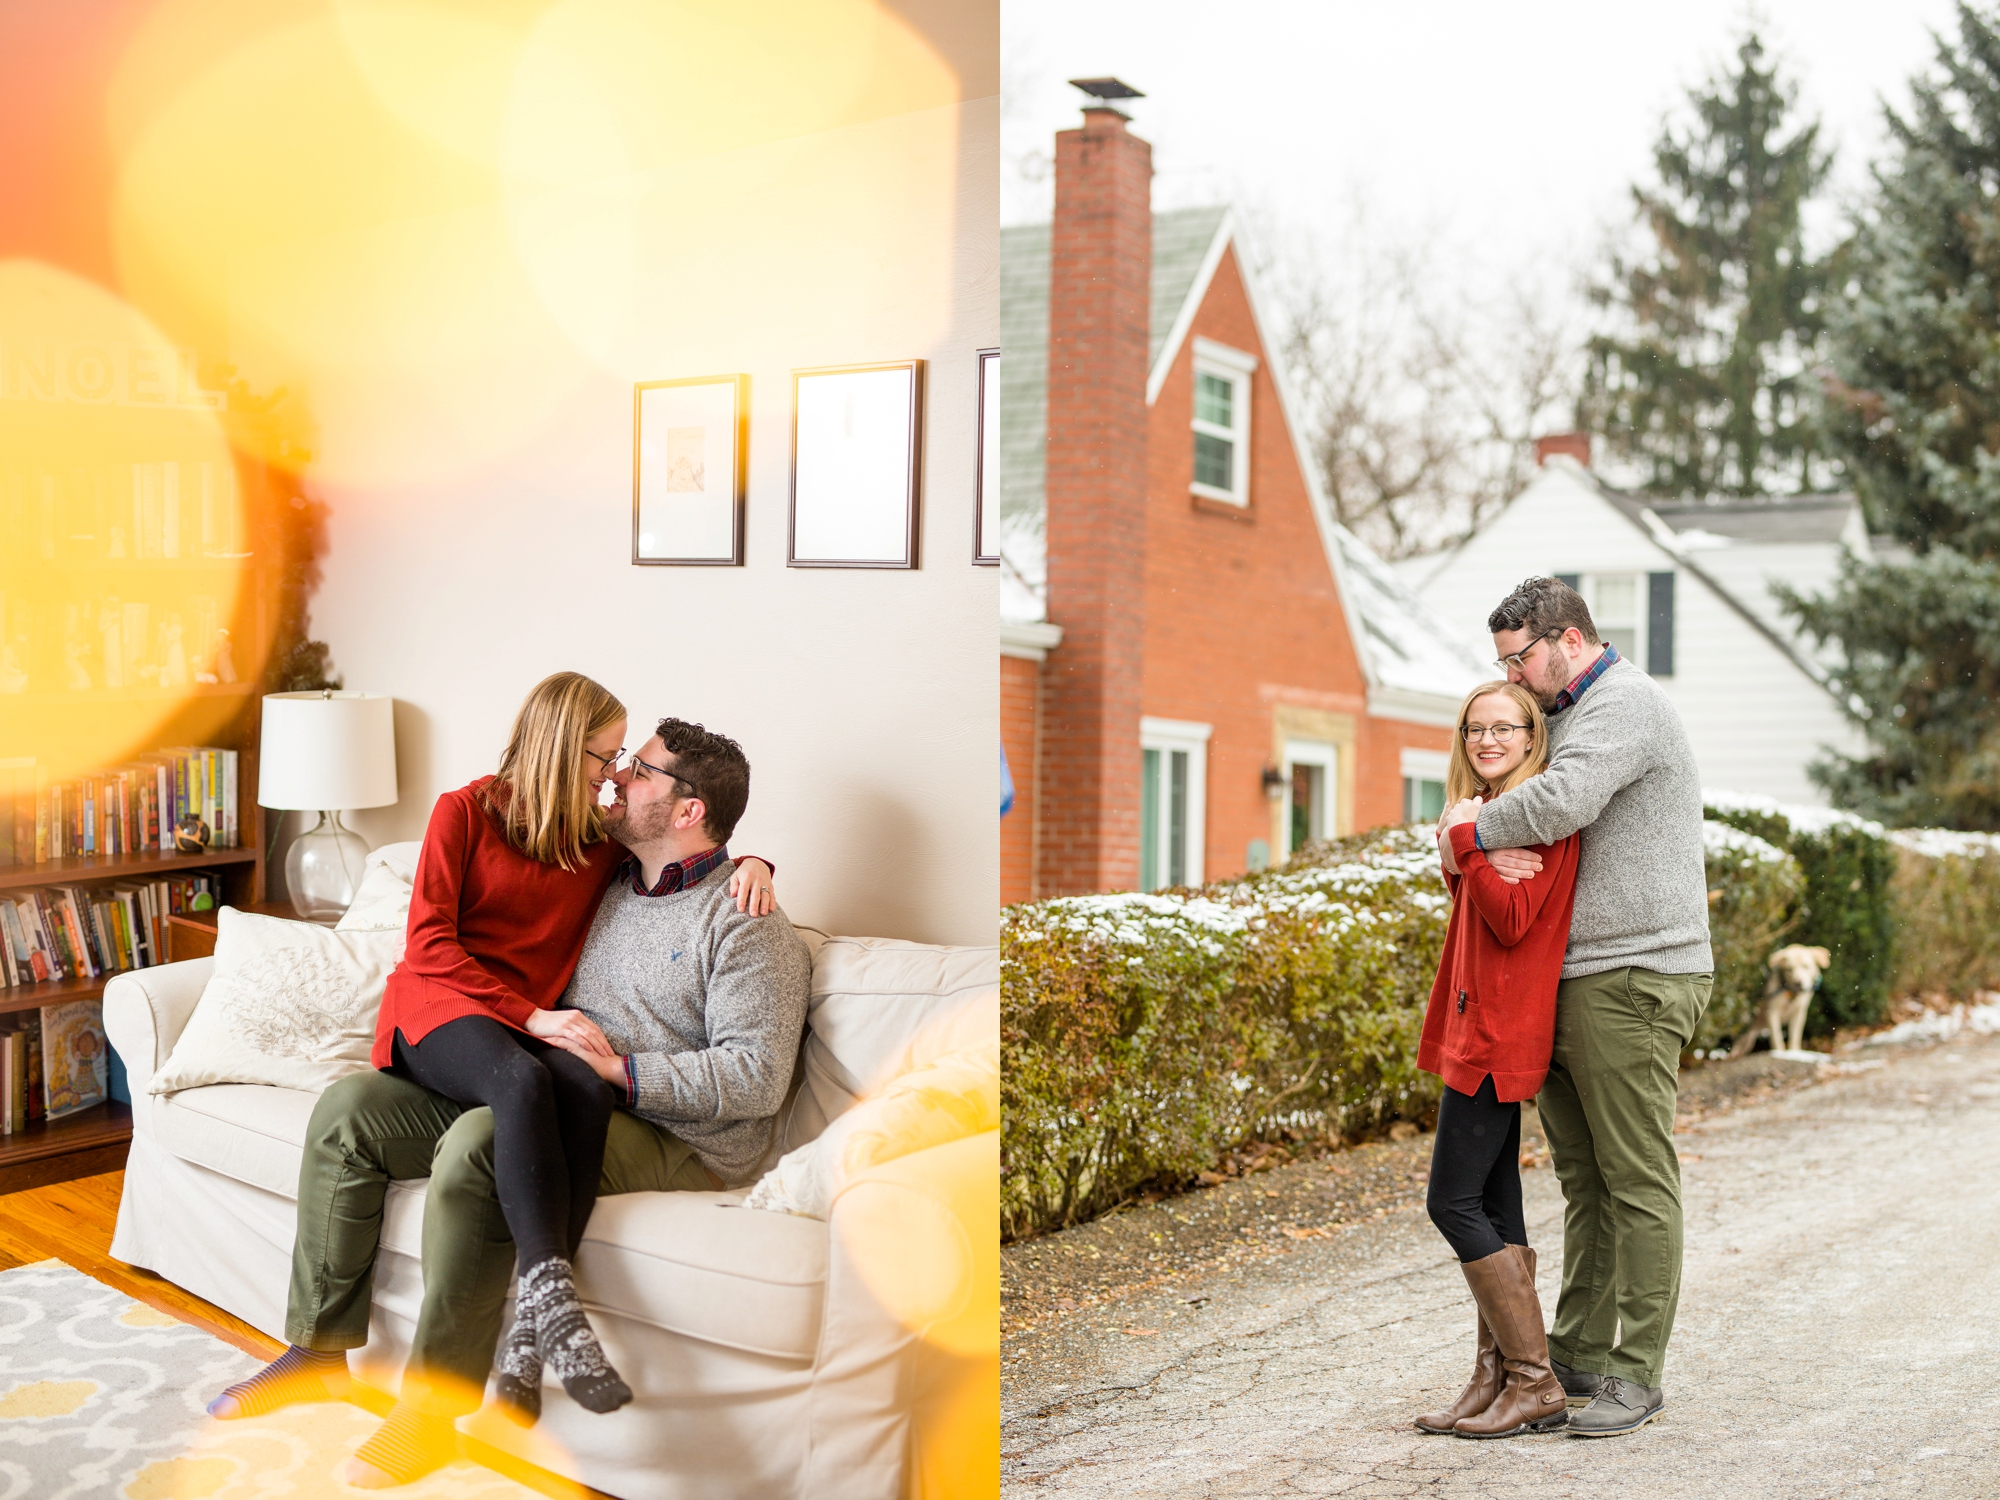 the best pittsburgh wedding photographers, best location for photoshoot in pittsburgh, pittsburgh engagement photos, in home couples session, cozy